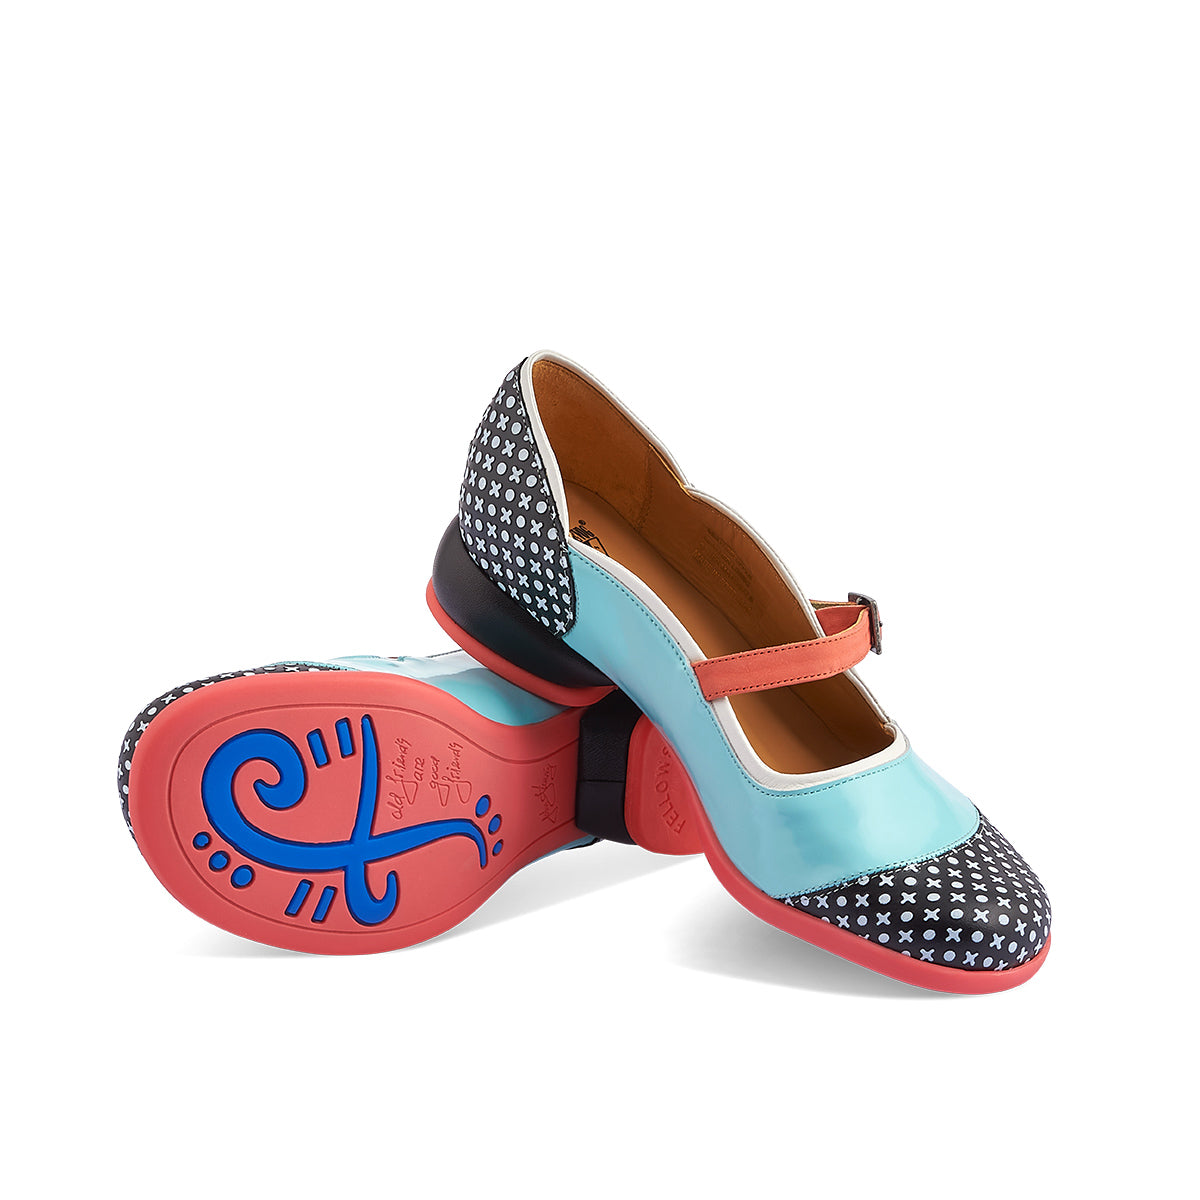 "A fabulous new colourway on a Fluevog favourite, this season's Sandra features a contrast light blue patent and embossed leather upper with a vibrant contrast rubber sole. The low Fellowship heel is as comfortable as a flat and the generous toe shape ensures a wonderful fit on any foot.  ""Old Friends are Good Friends."""